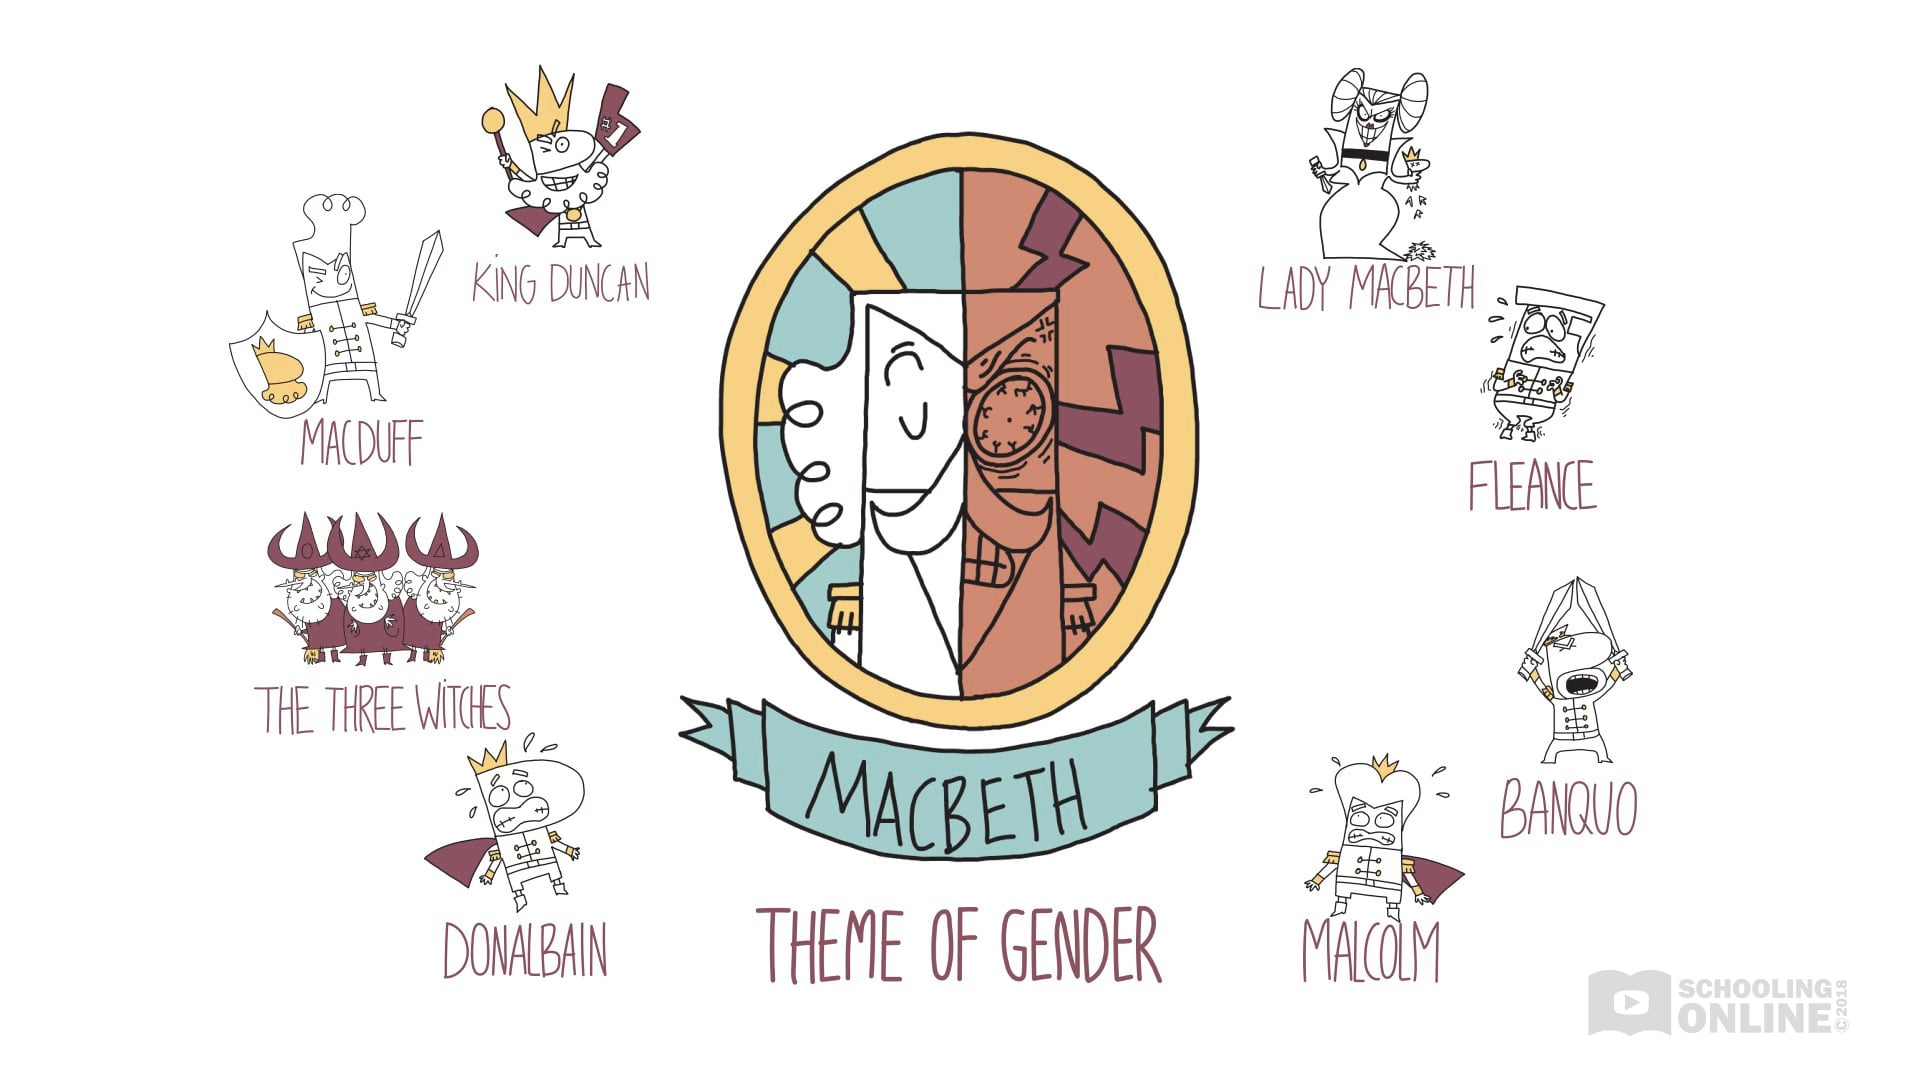 Macbeth Theme of Gender - Shakespeare Today Series